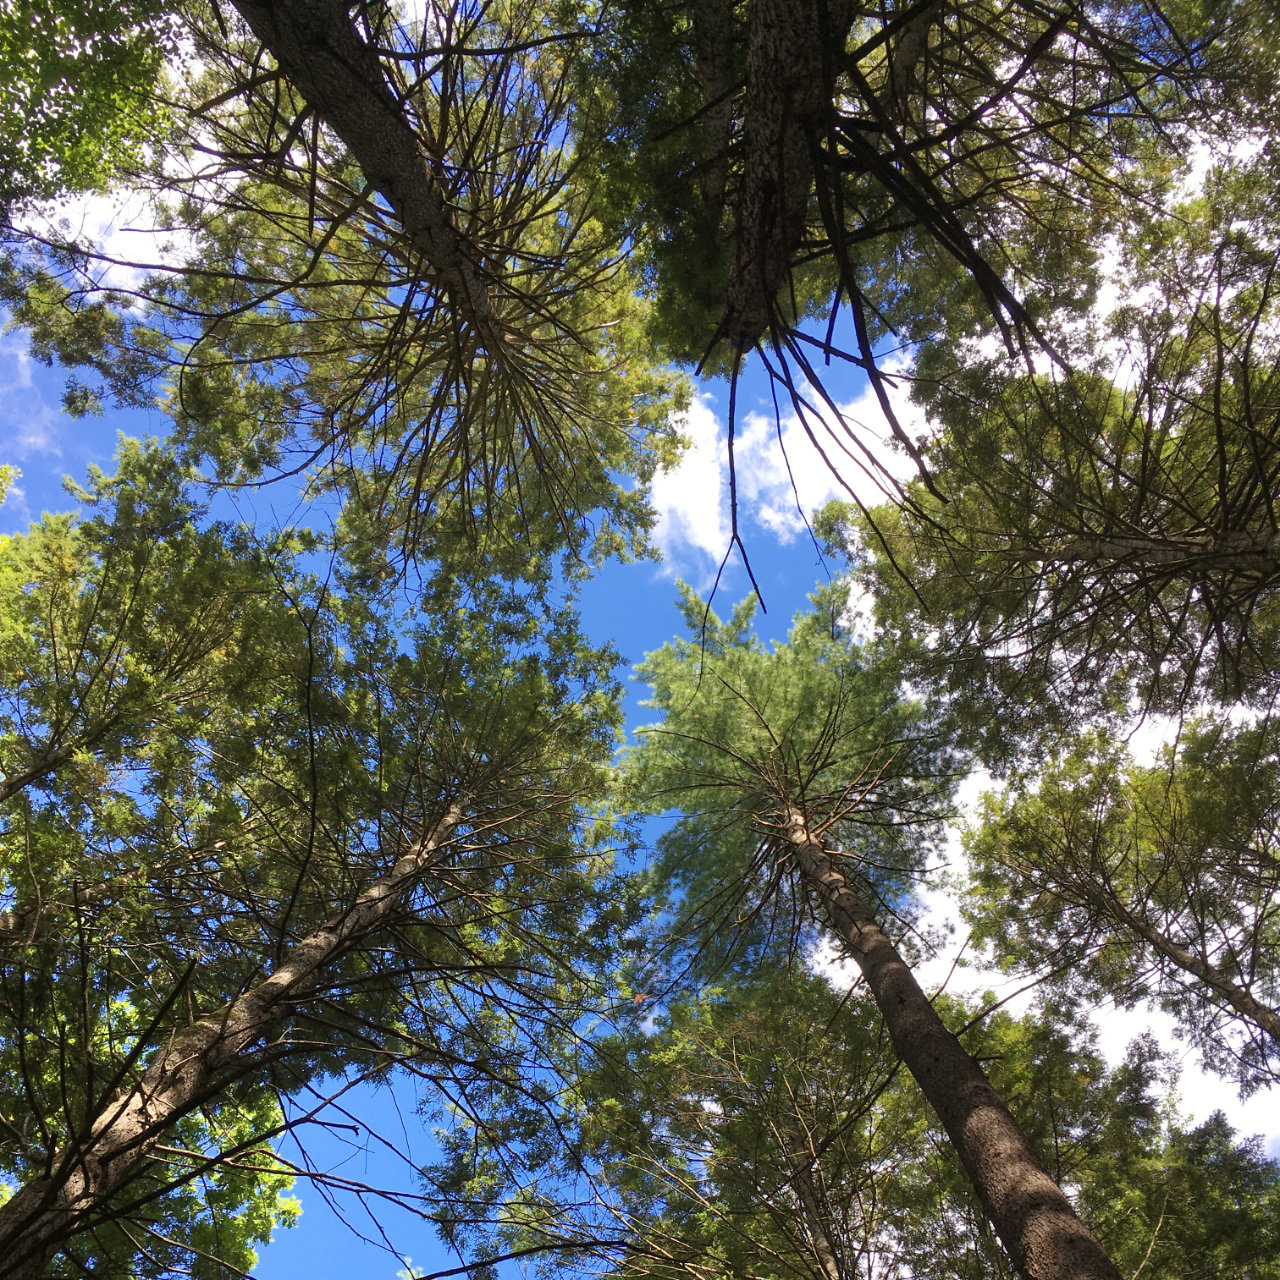 Photo from the forrest floor looking straight up, along the Robert Frost Trail in Amherst MA.